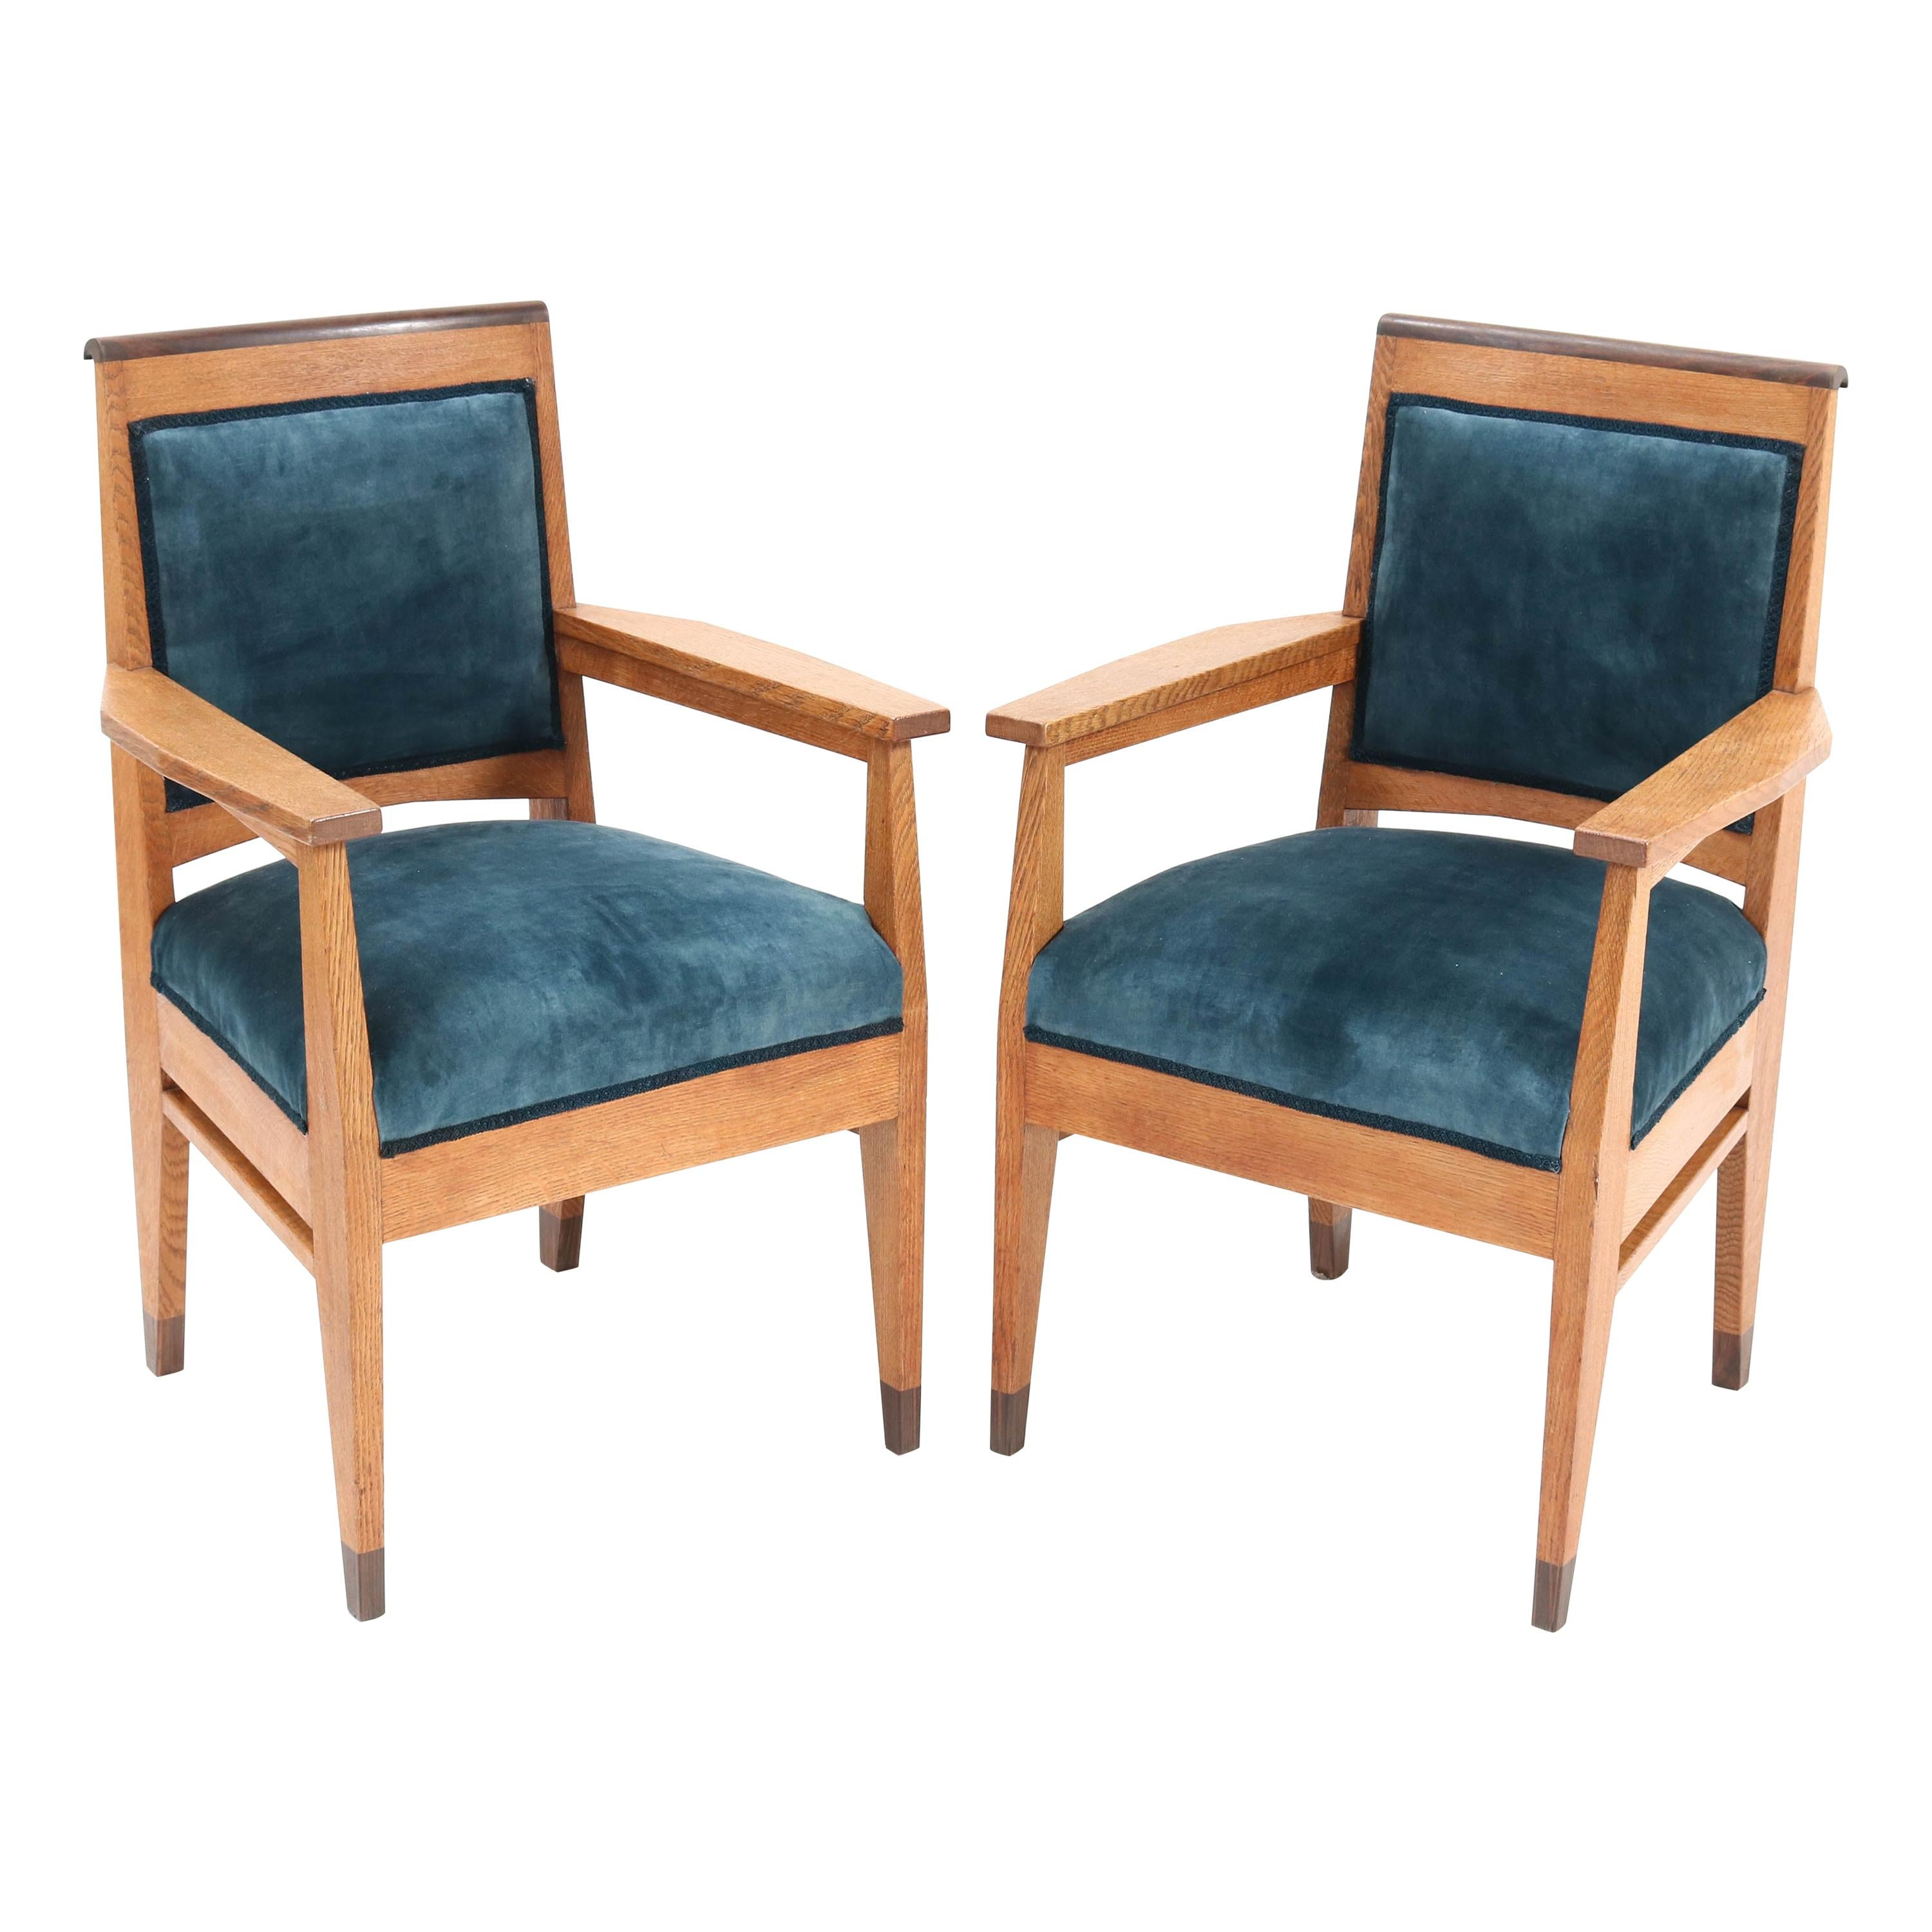 Two Oak Art Deco Haagse School Armchairs by Anton Lucas Leiden, 1920s